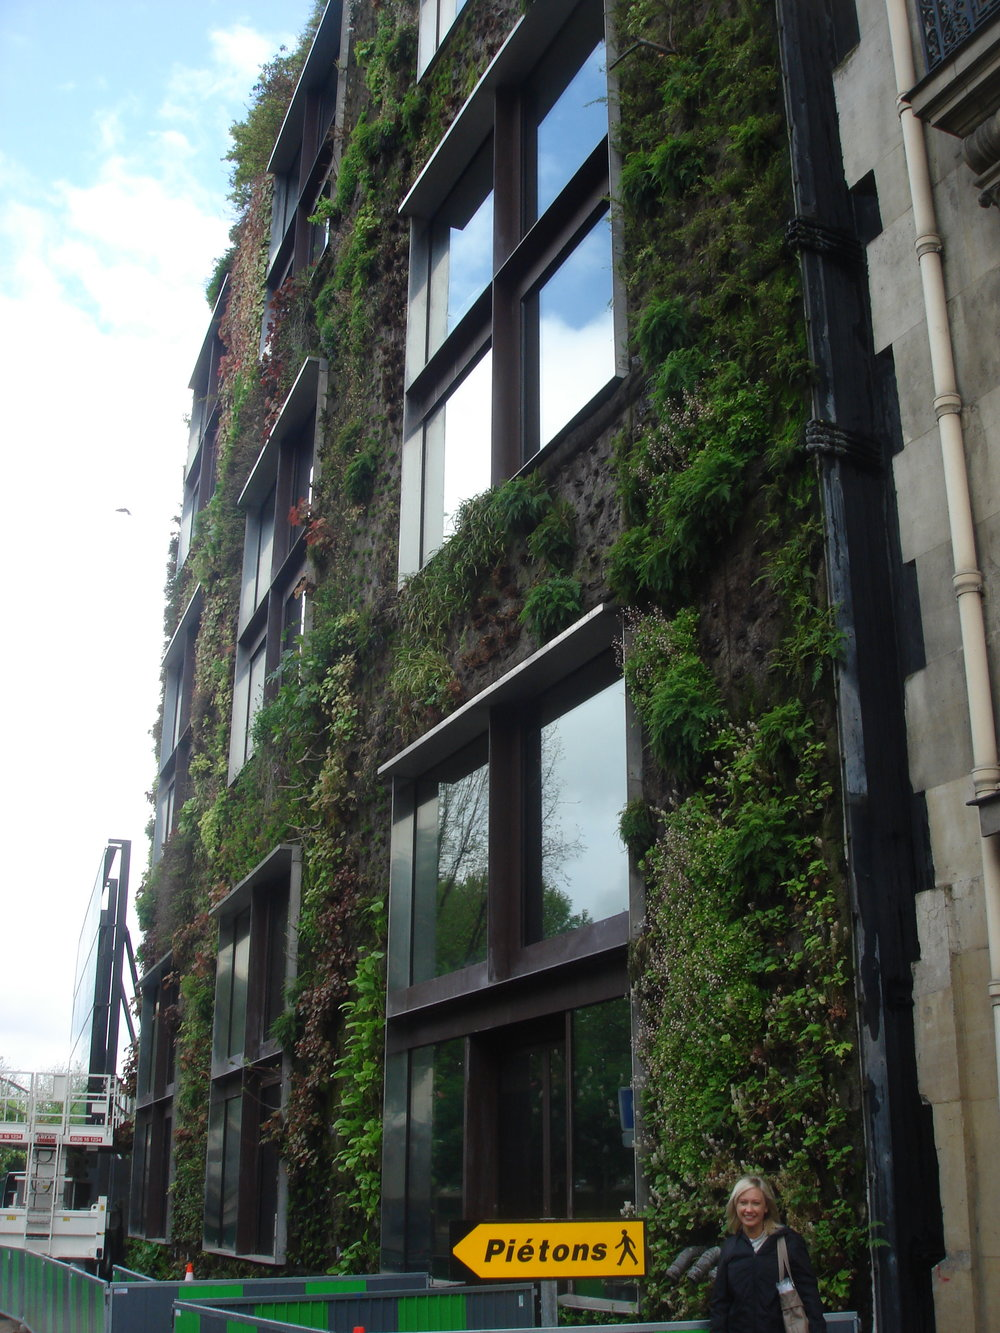 13 Quai Branley, Paris green wall photograph courtesy of Zoë Zimmerman.JPG